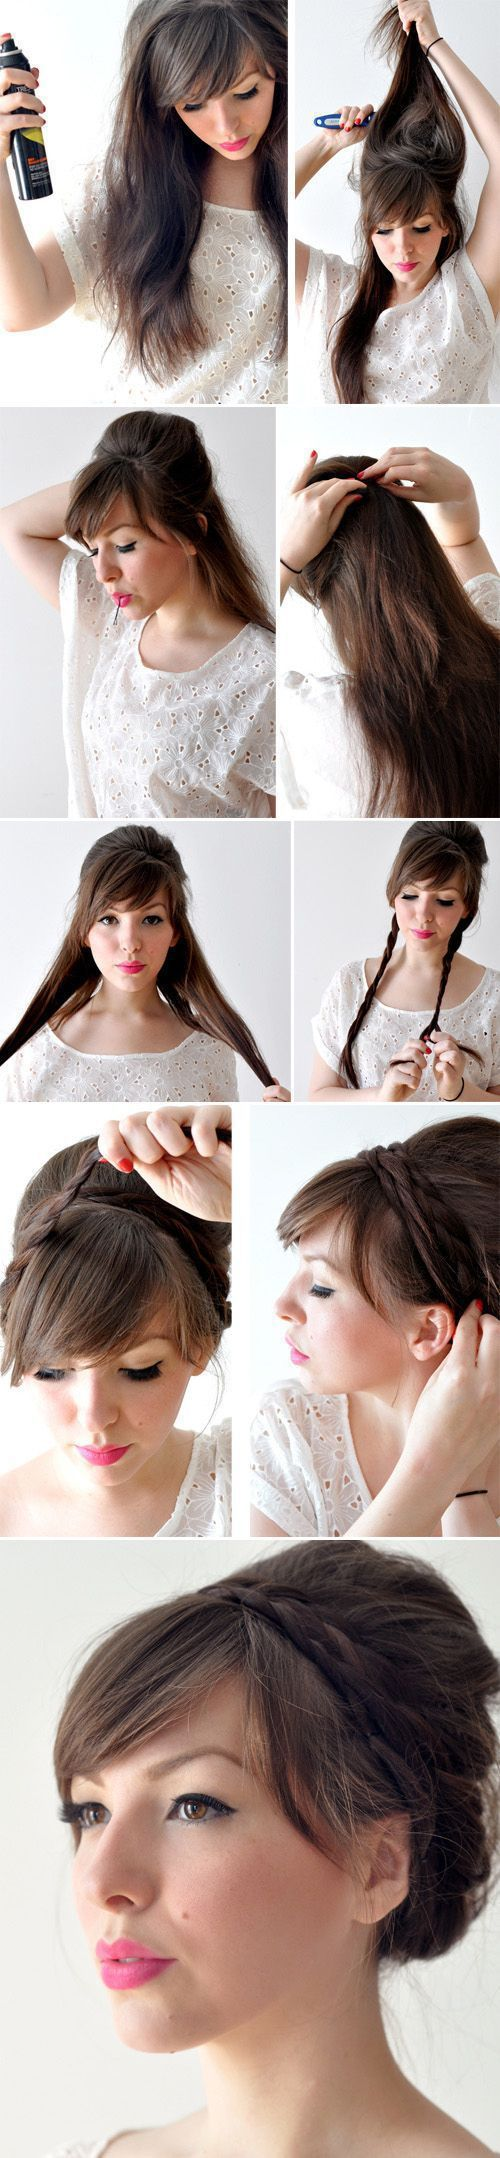 Creative Hairstyles That You Can Easily Do at Home (27 pics)